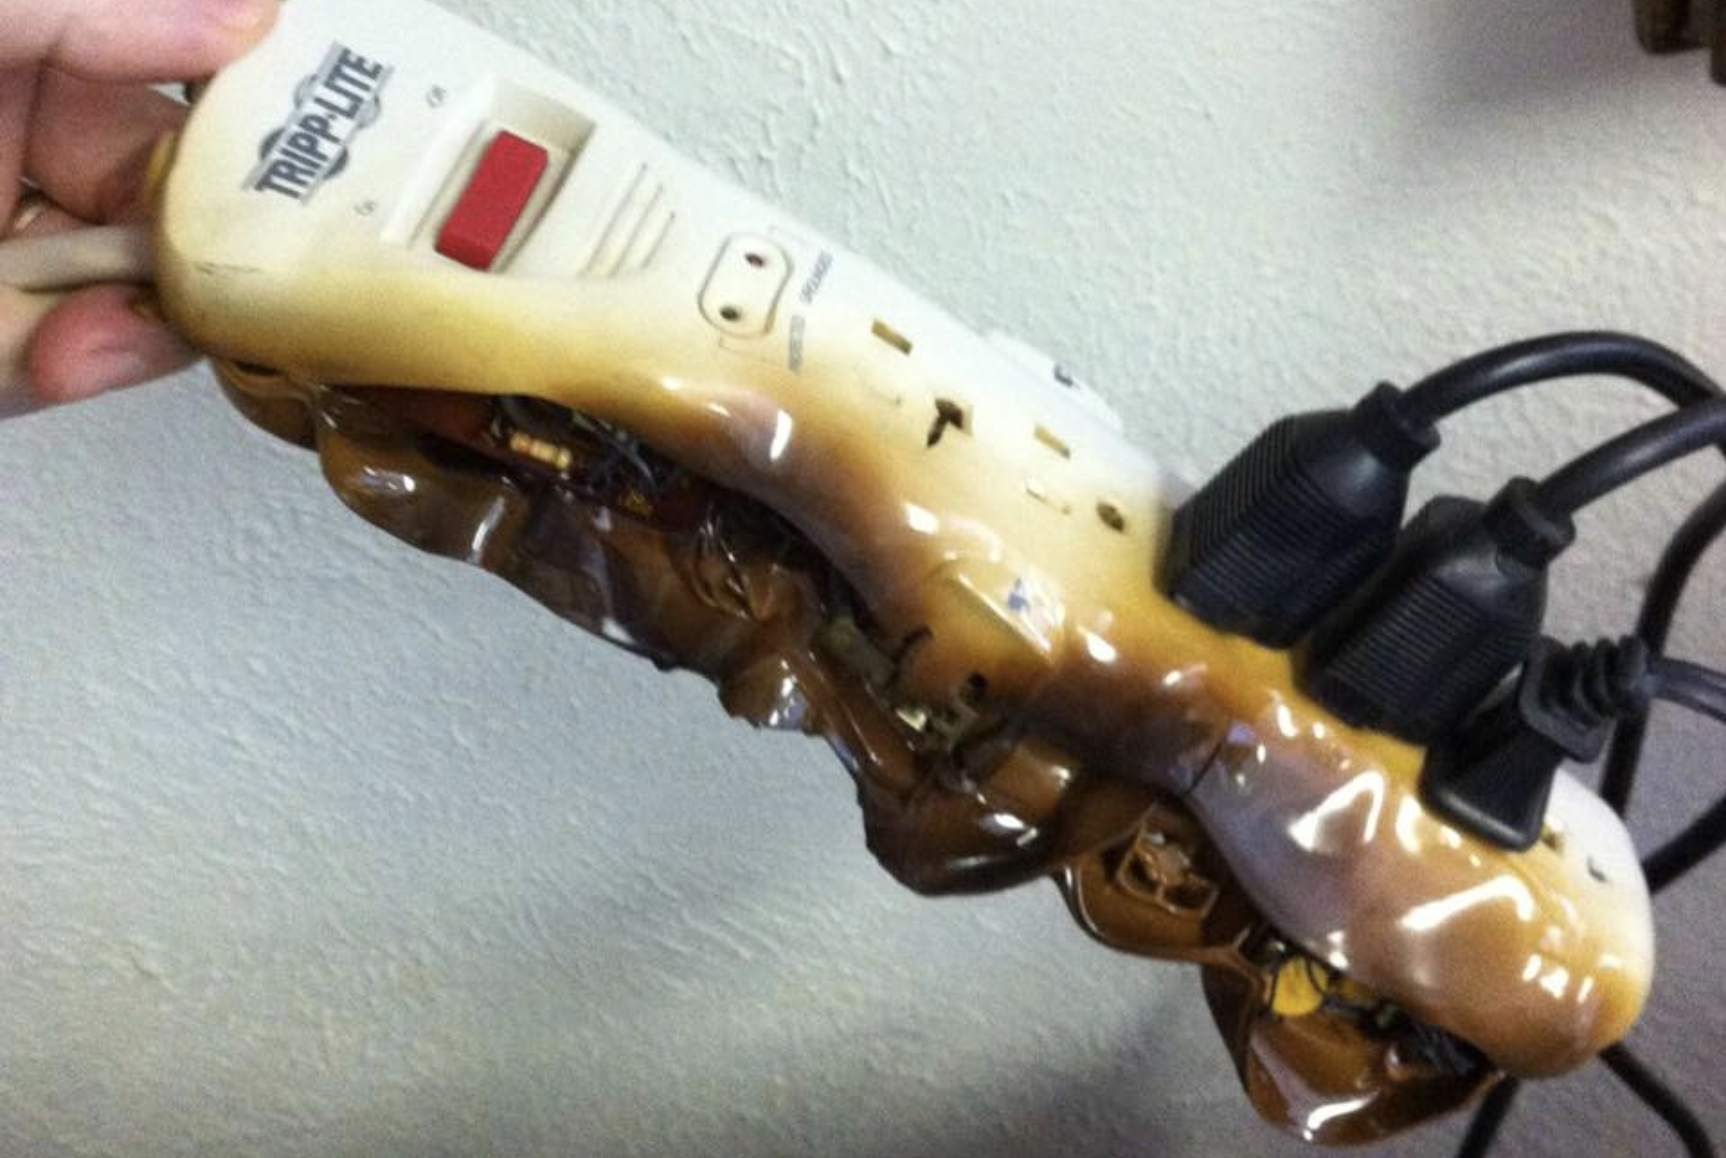 Do not plug space heaters into power strips, fire officials